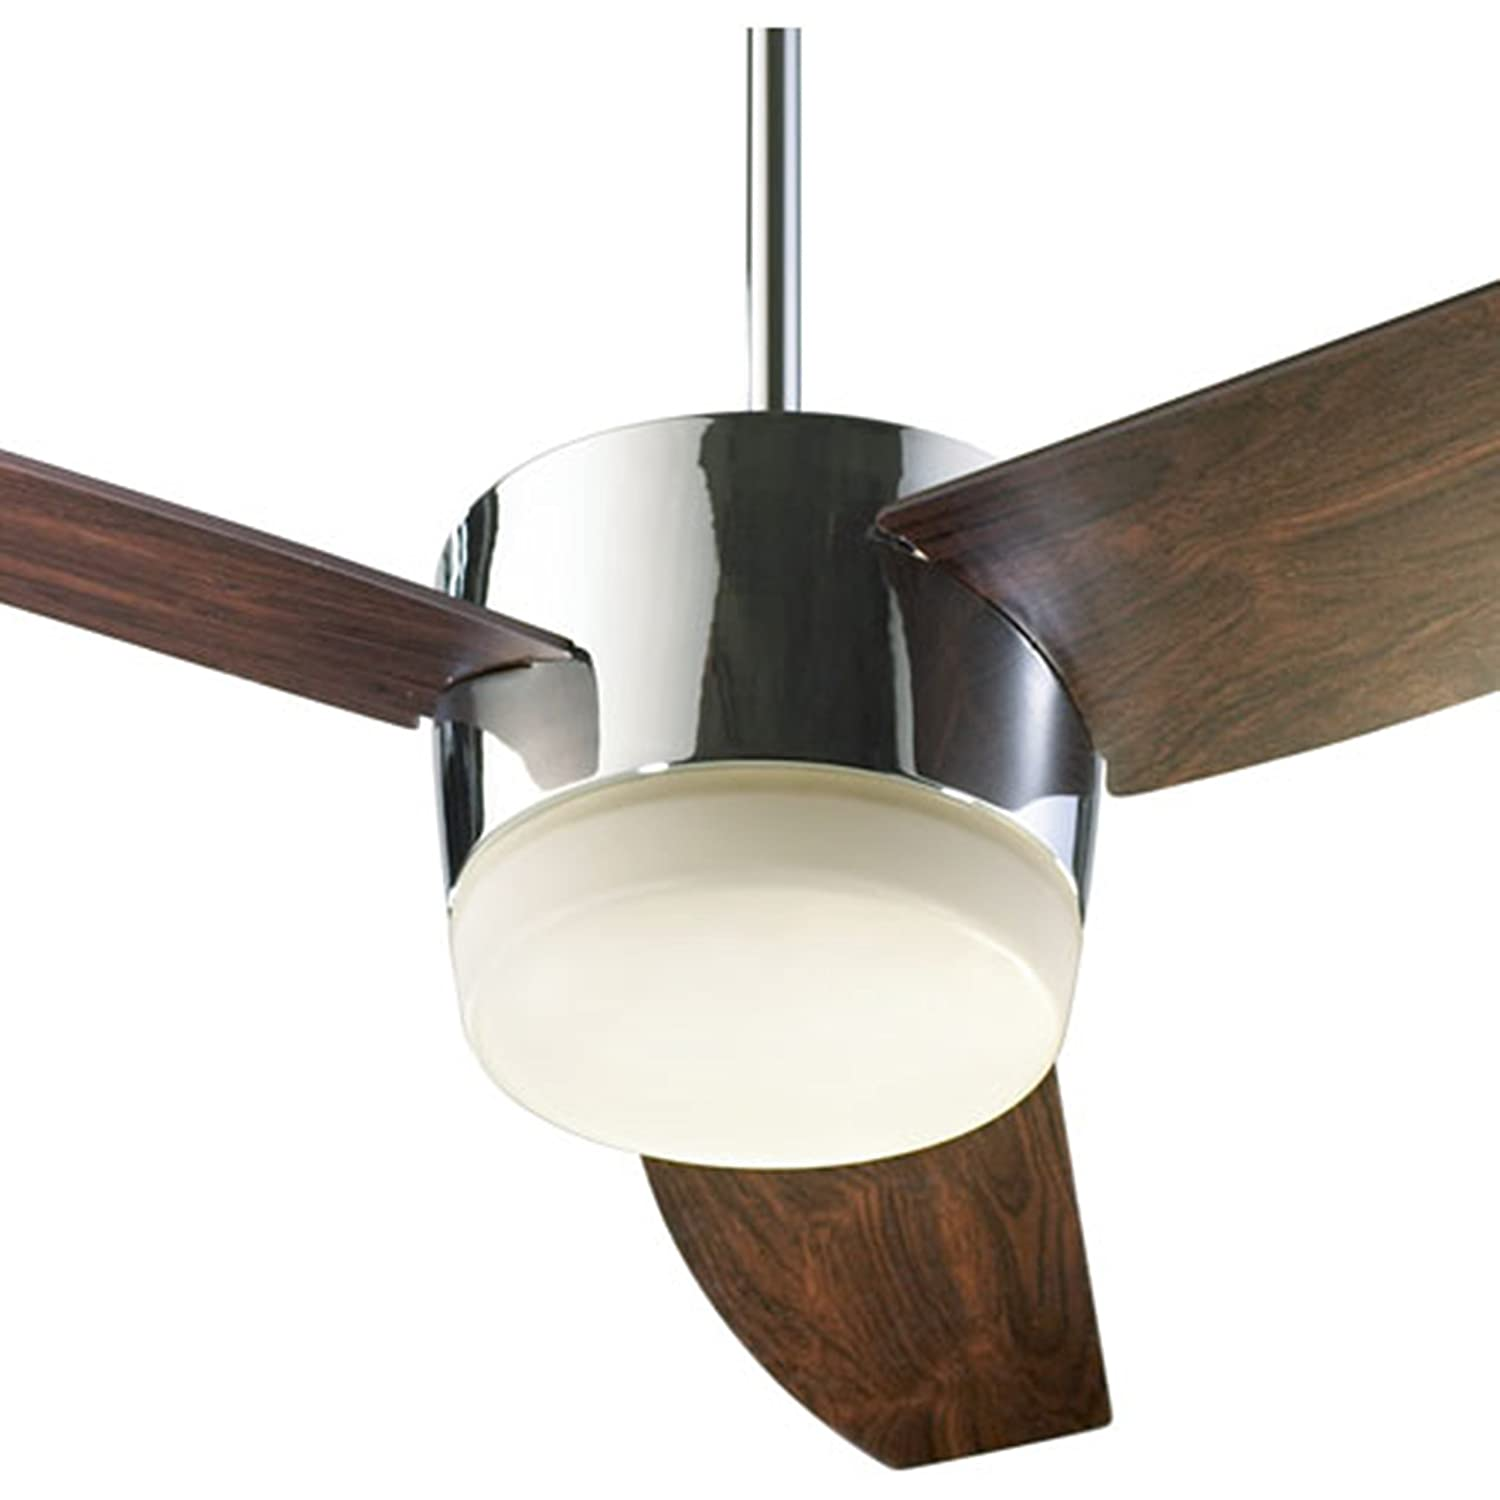 lighting hampton bay replacement warisan fans regarding throughout iv windward hawkins ceiling glass fan youtube amusing